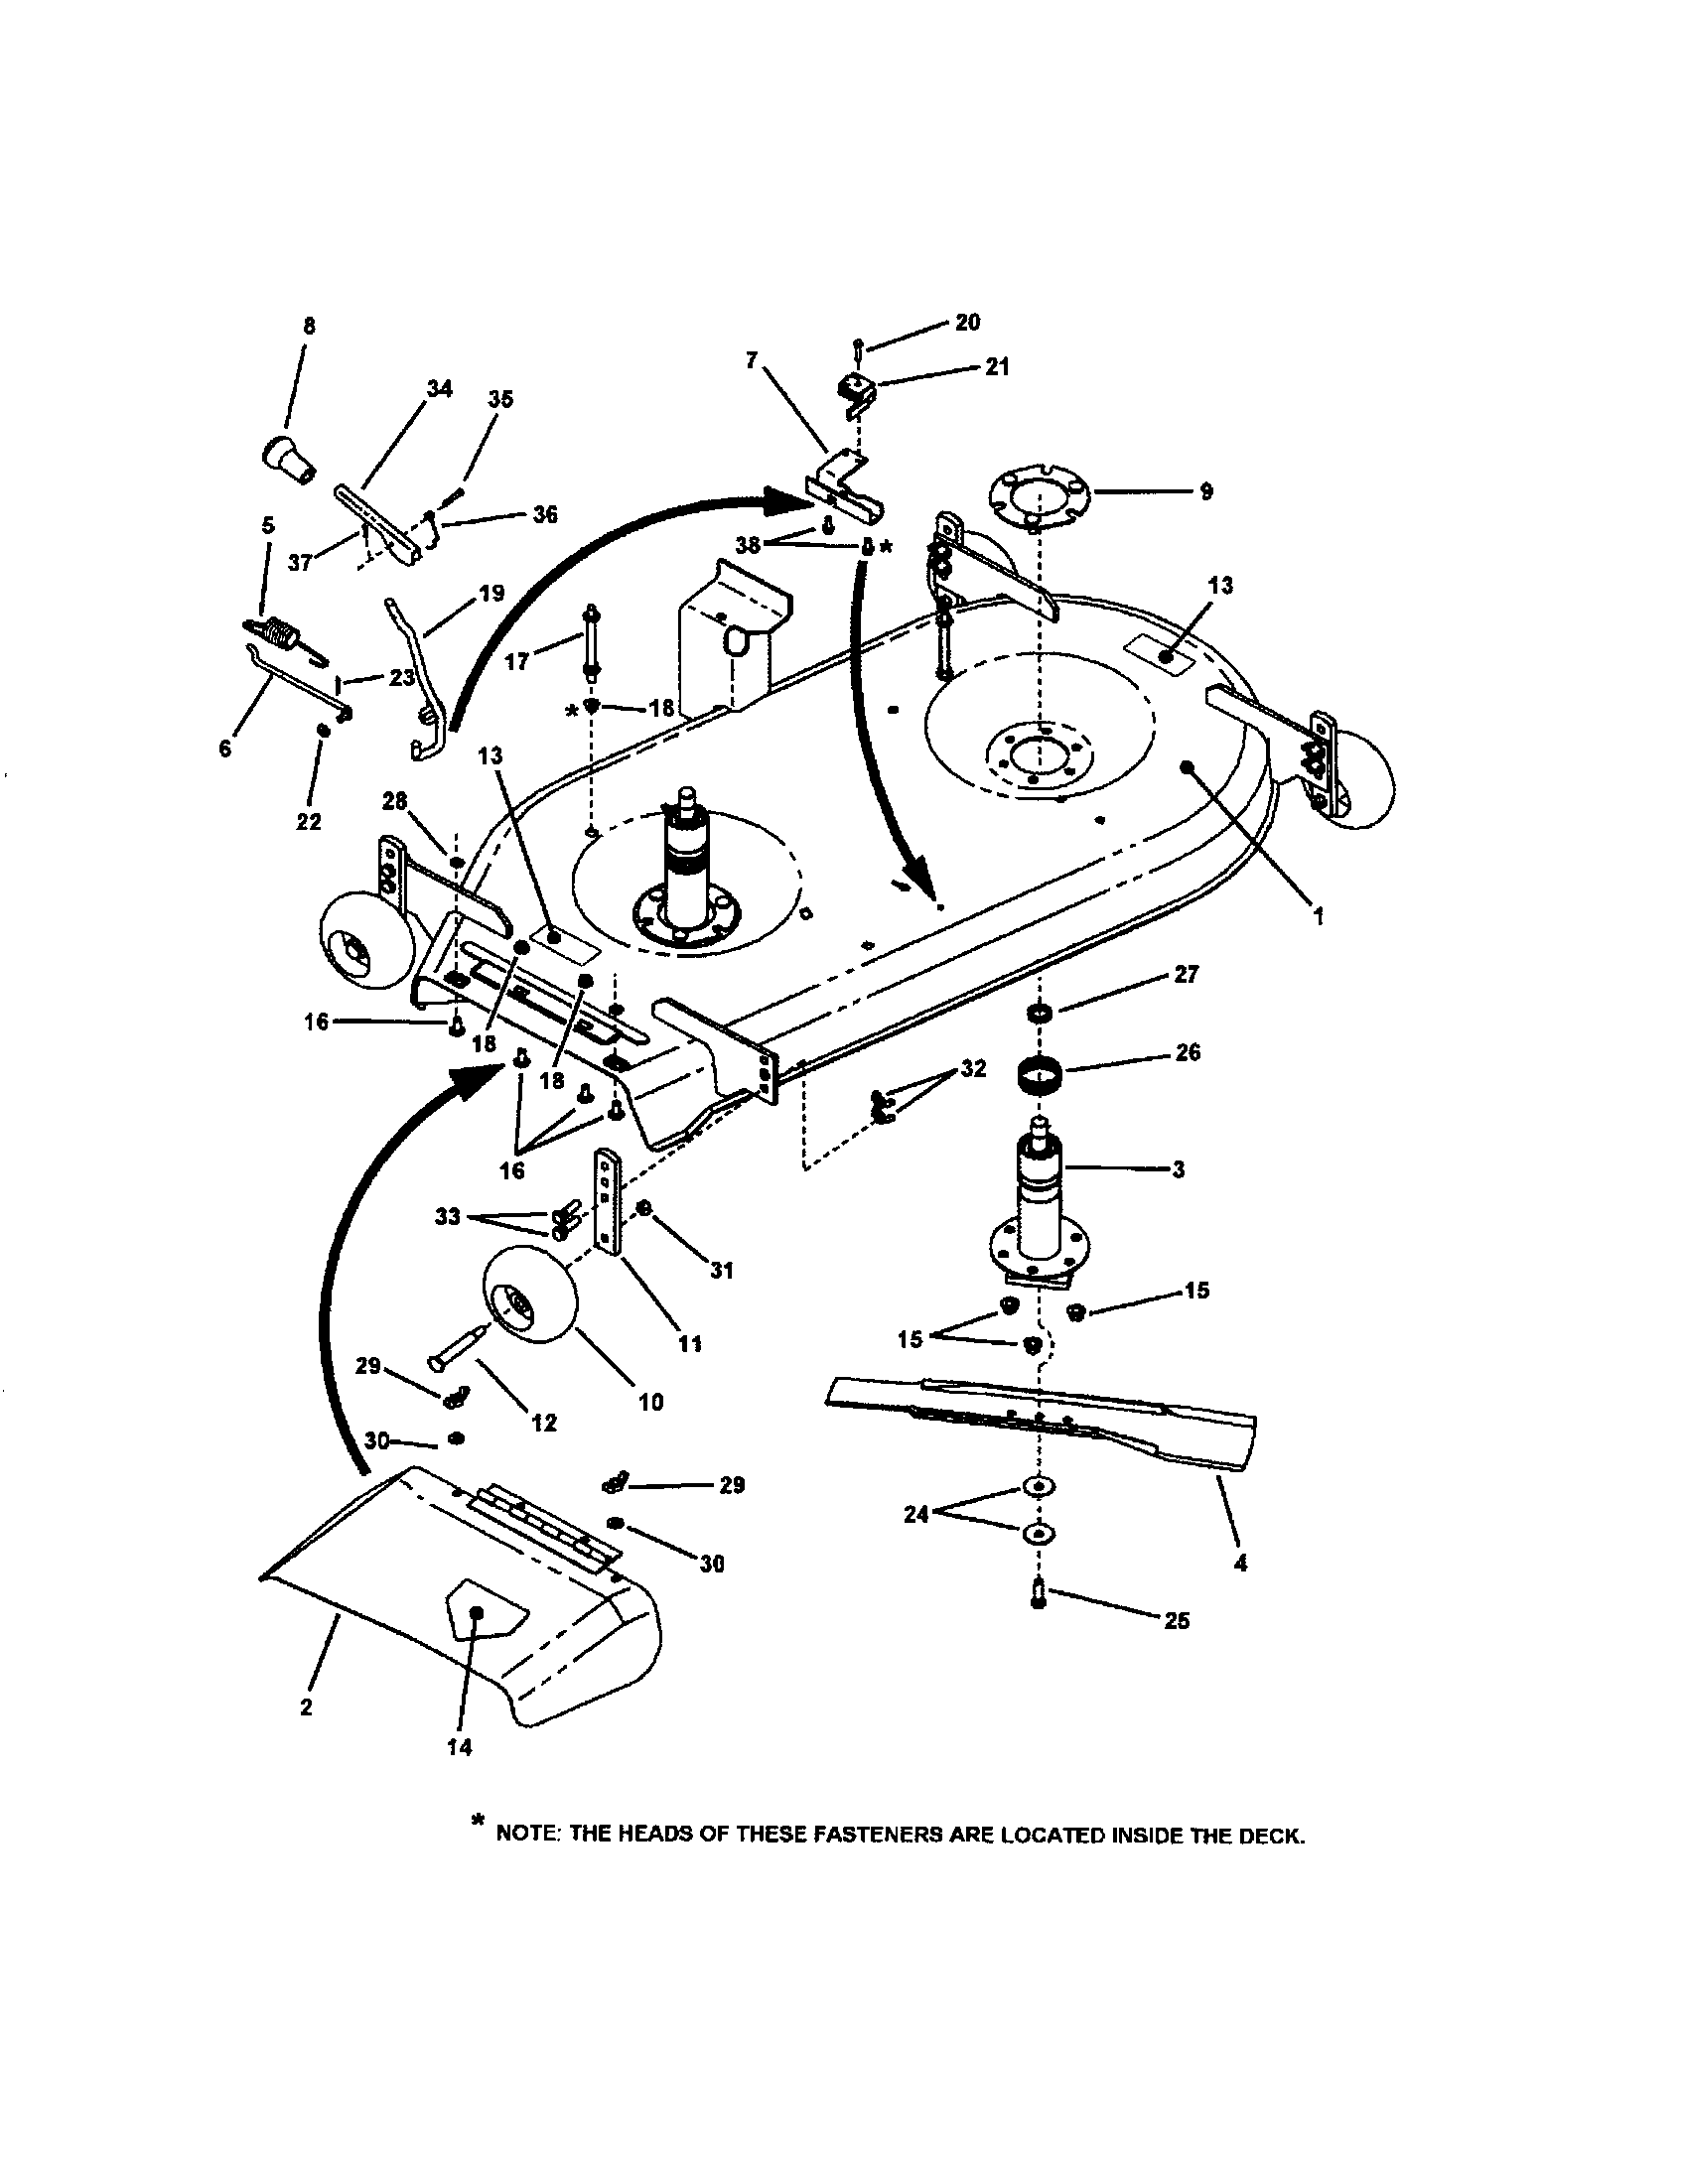 hight resolution of wiring diagram for 720 john deere tractor